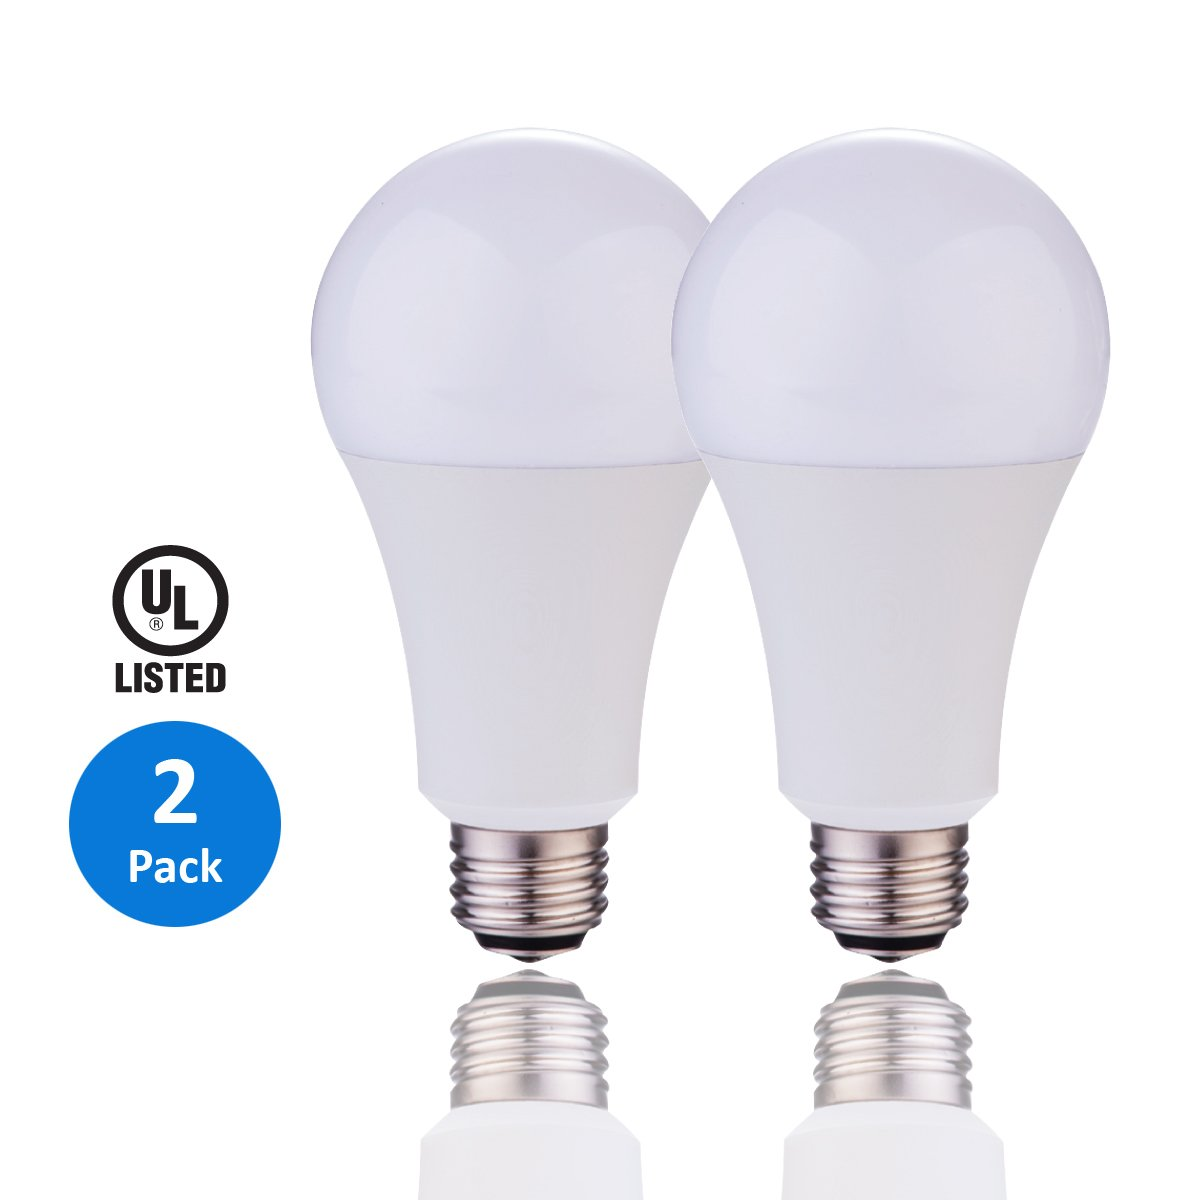 AmeriLuck 3-WAY 50/100/150W Equivalent A21 LED Bulb 800/1500/2200lumens Daylight 5000K 2 Pack